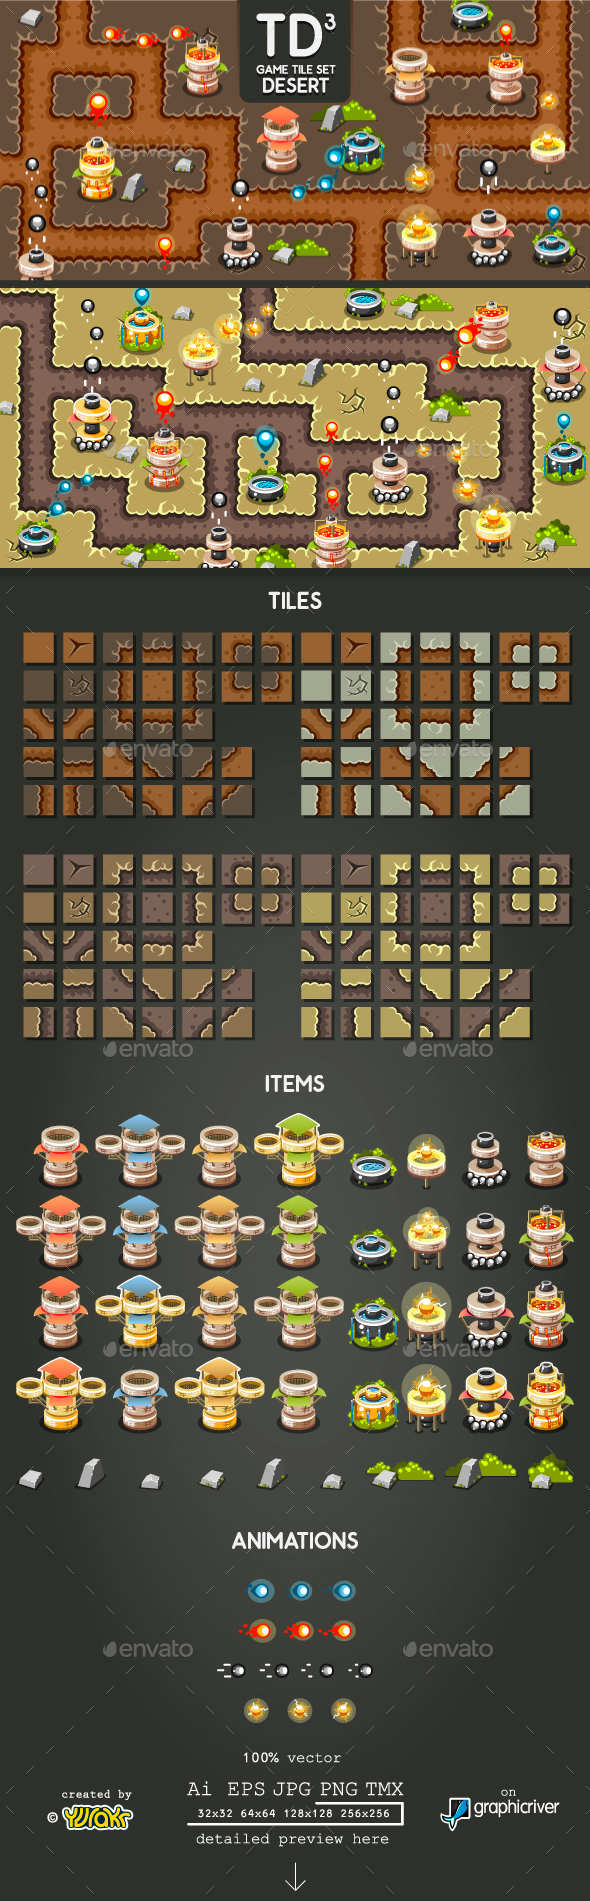 Tower Defence Game Tile Set Three - Tilesets Game Assets